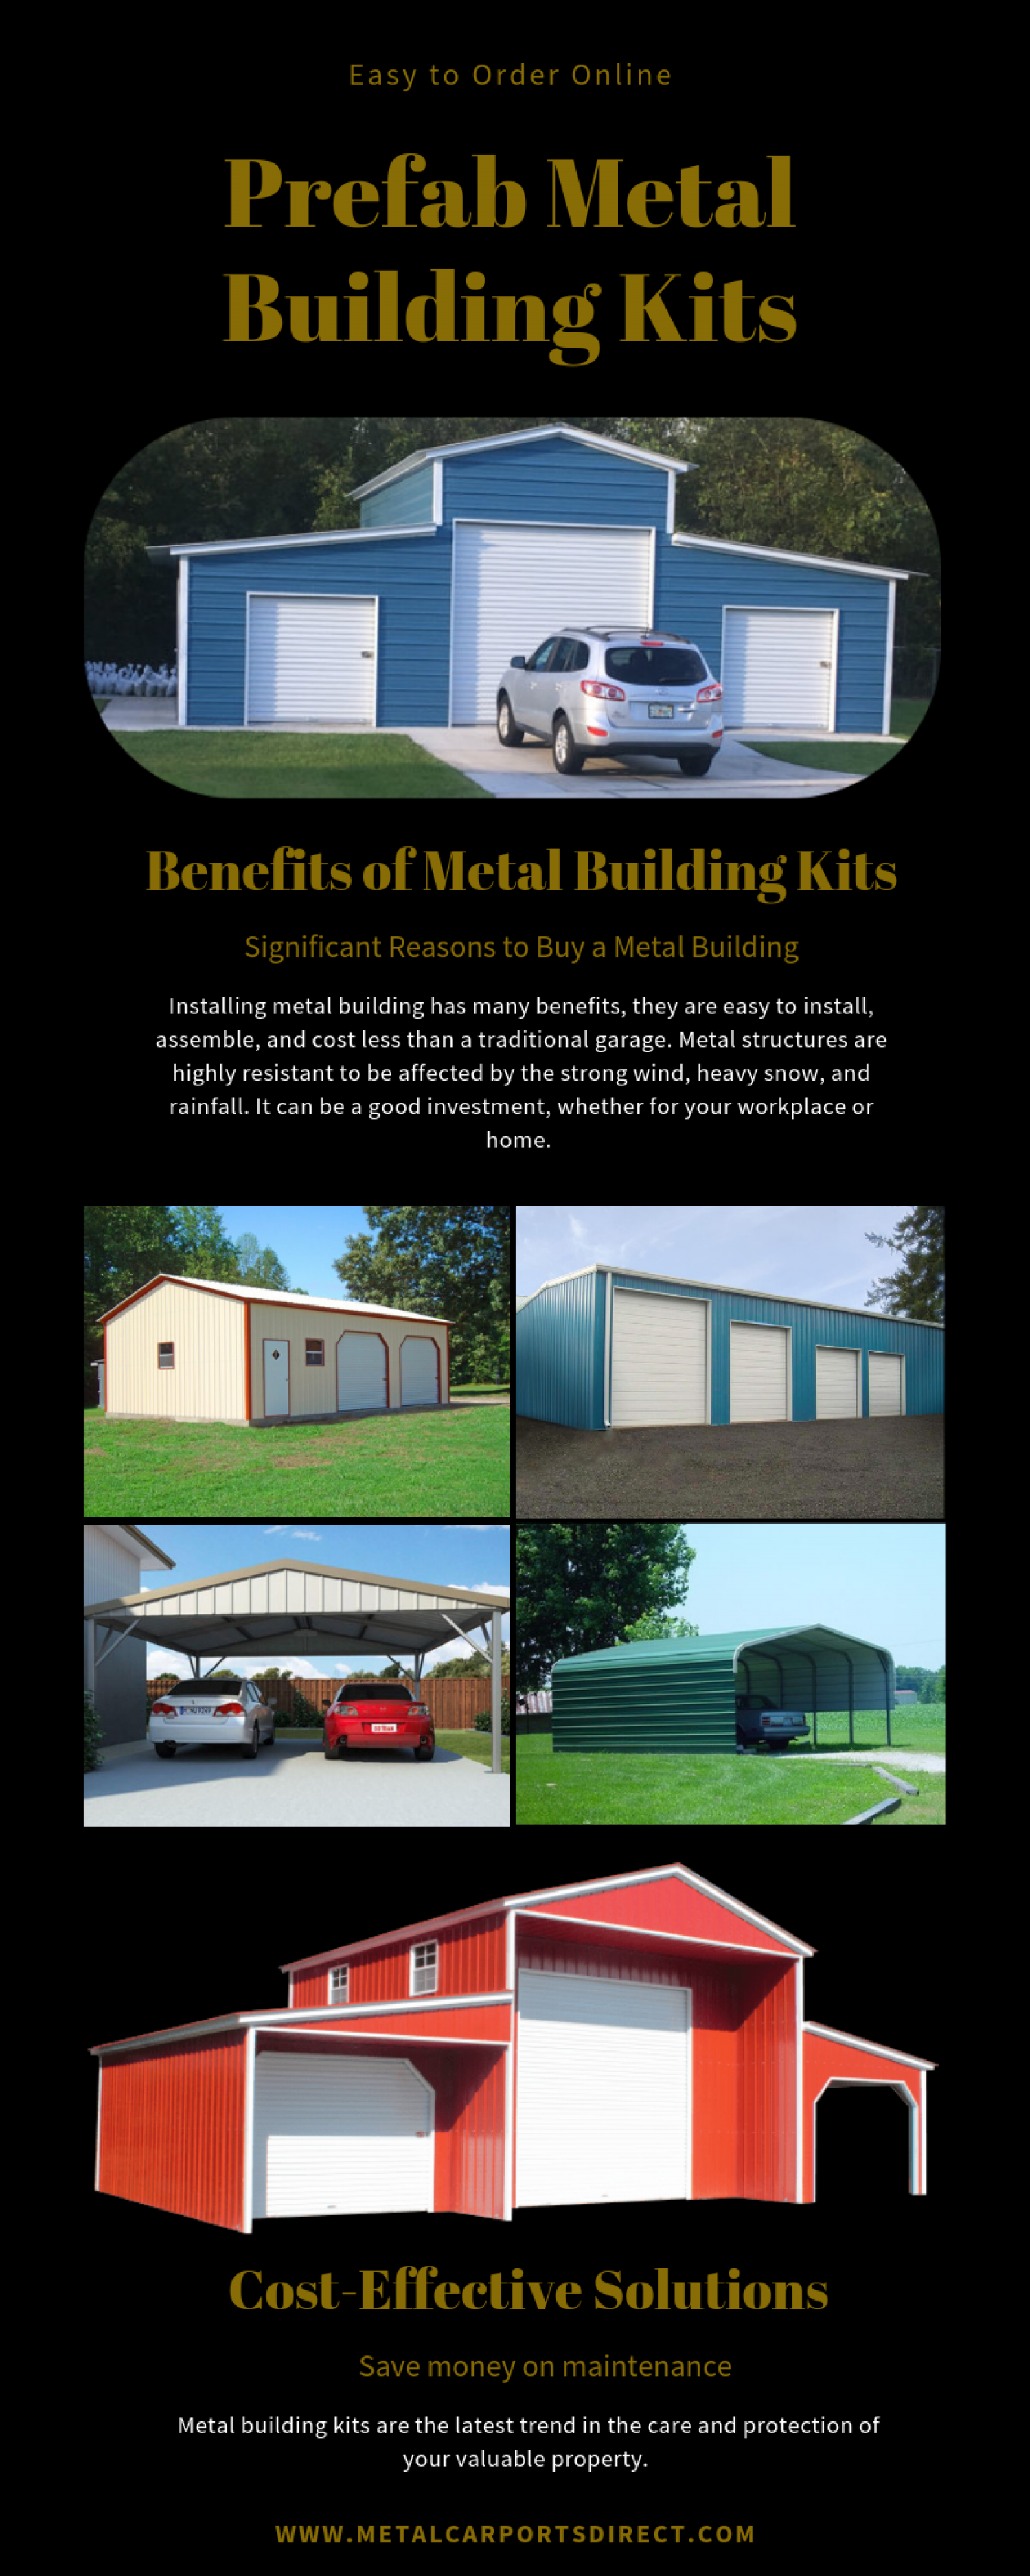 Prefab Metal Building Kits | Metal Carports Direct Infographic